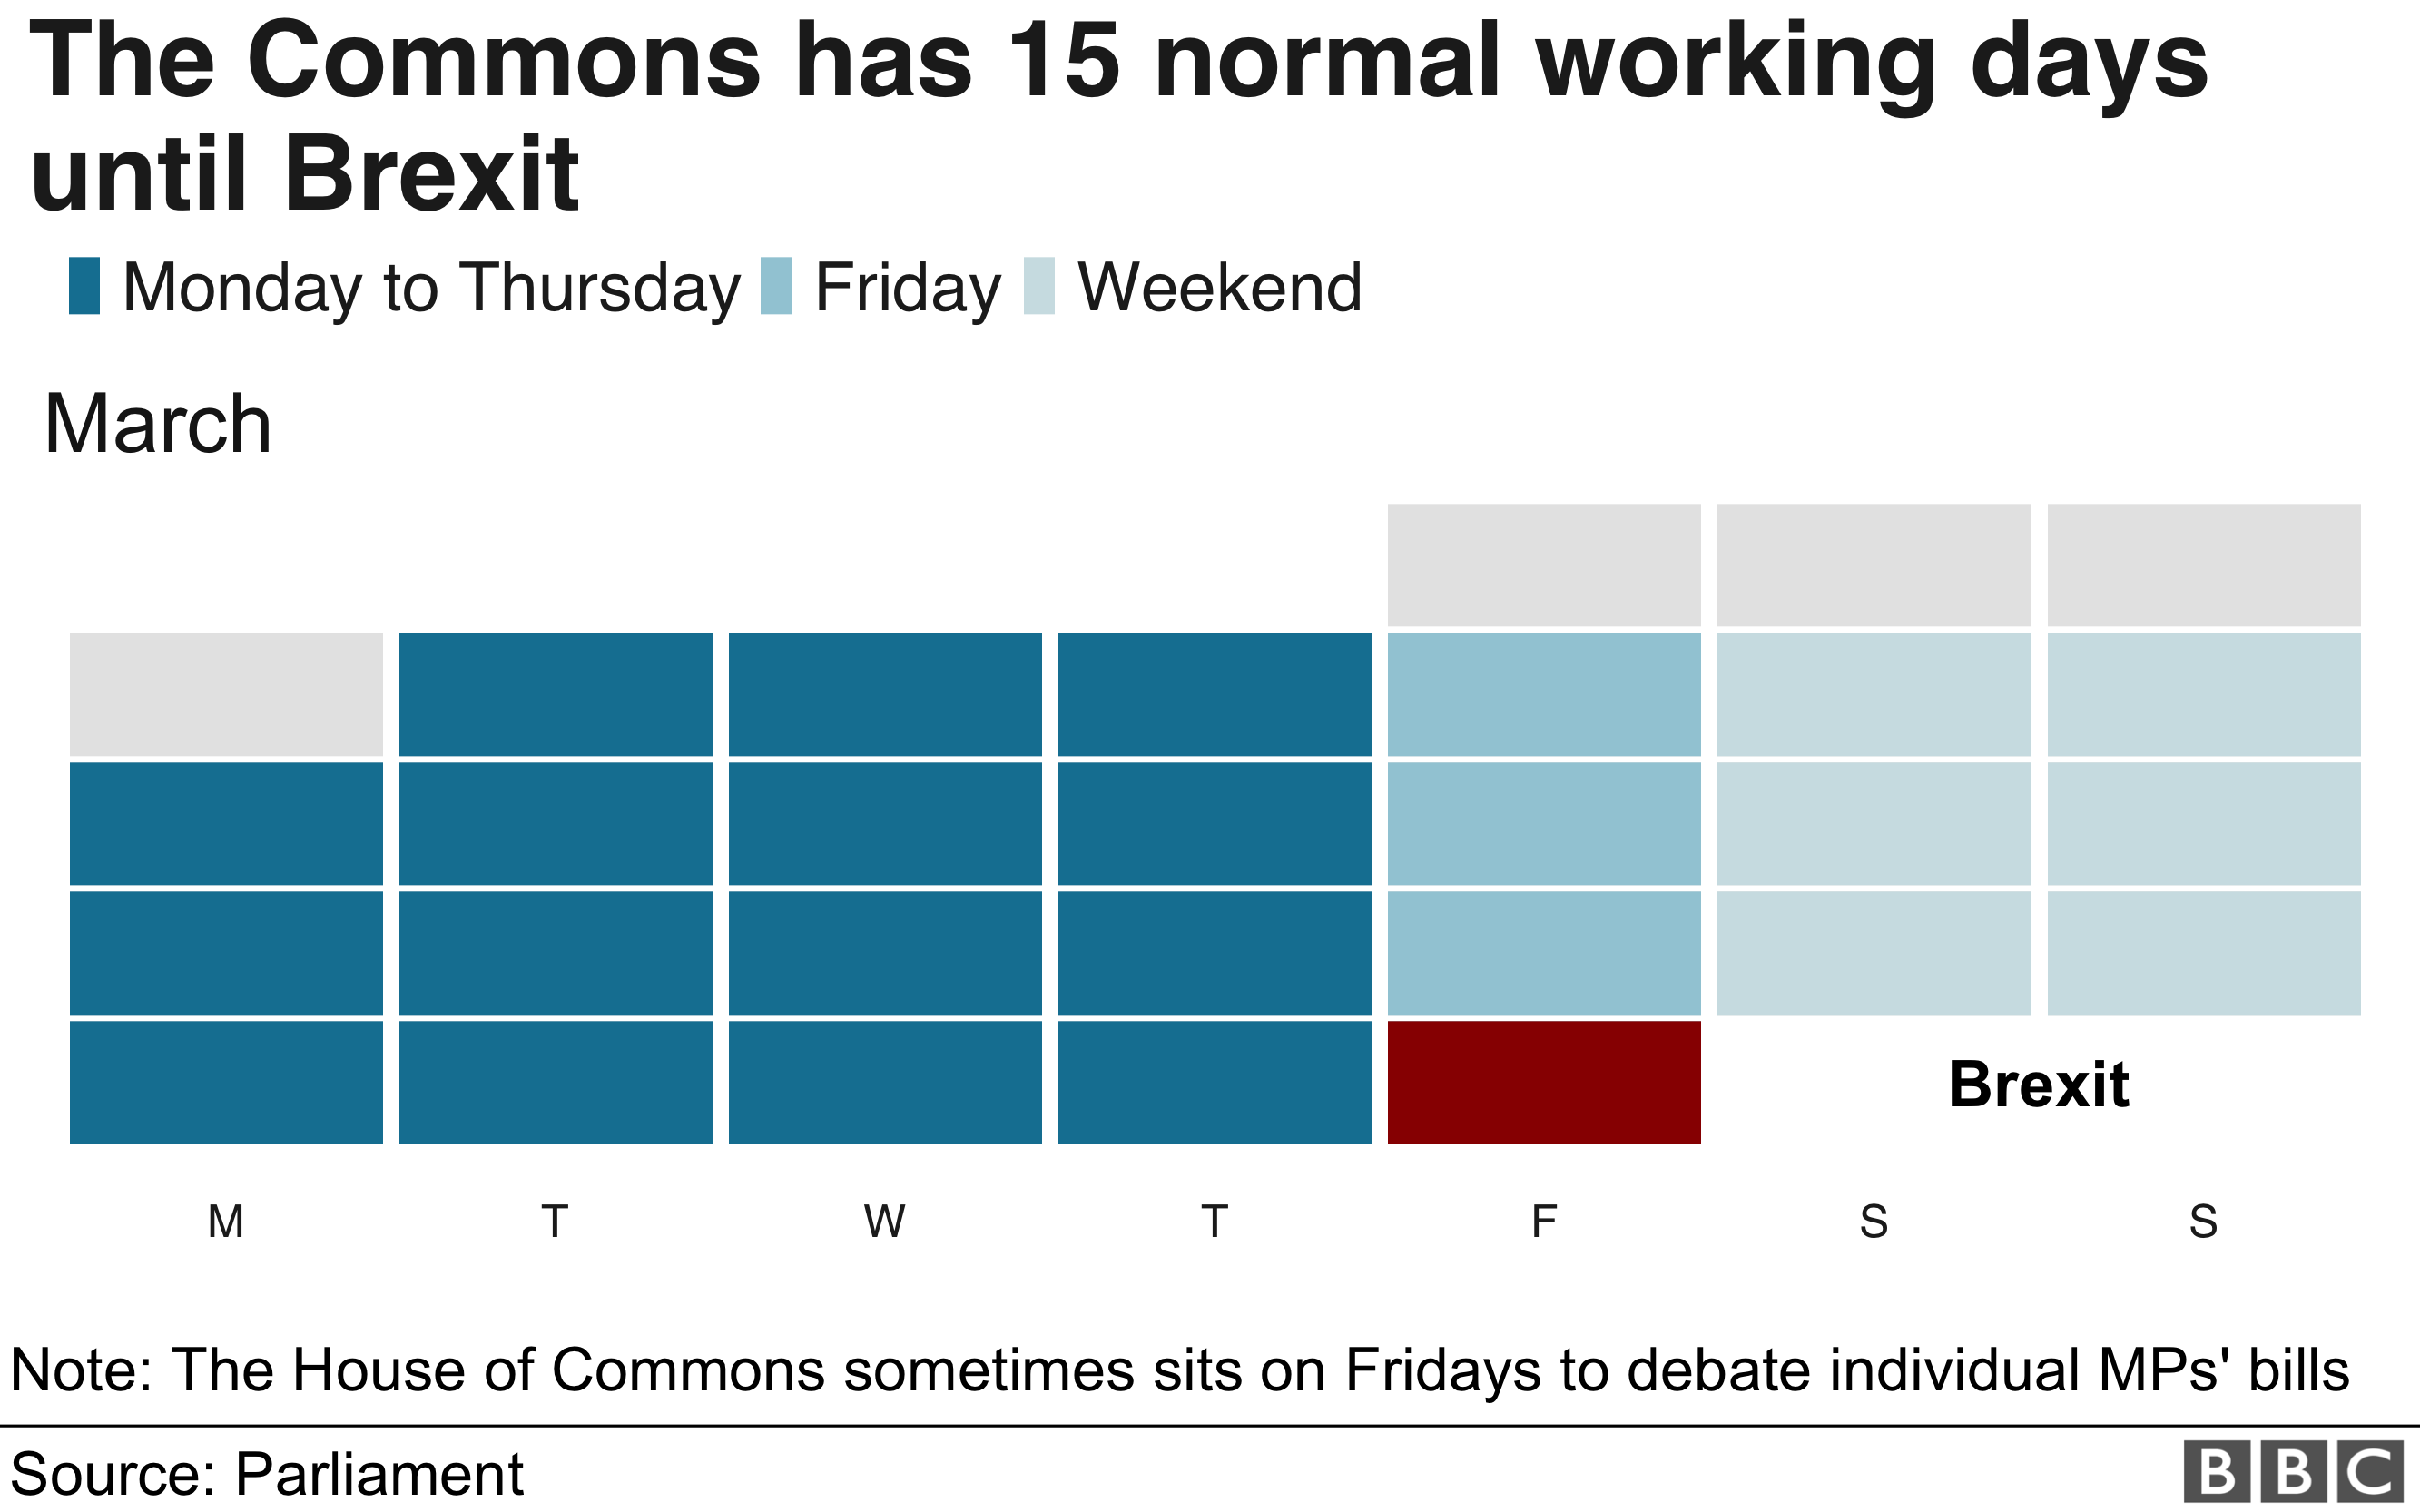 Chart showing the number of working days until Brexit